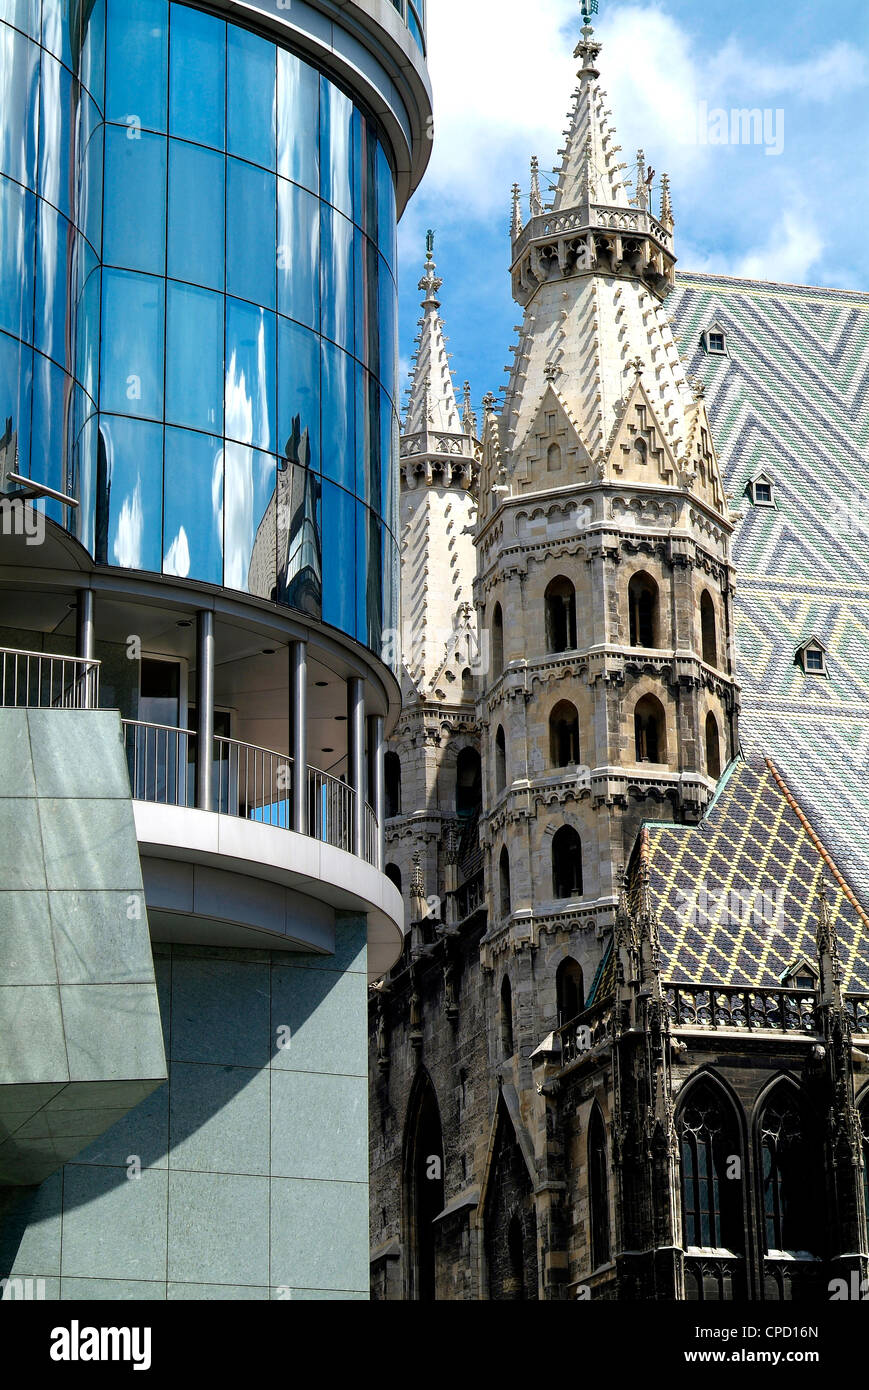 Haas Haus and Stephansdom, Vienna, Austria, Europe - Stock Image